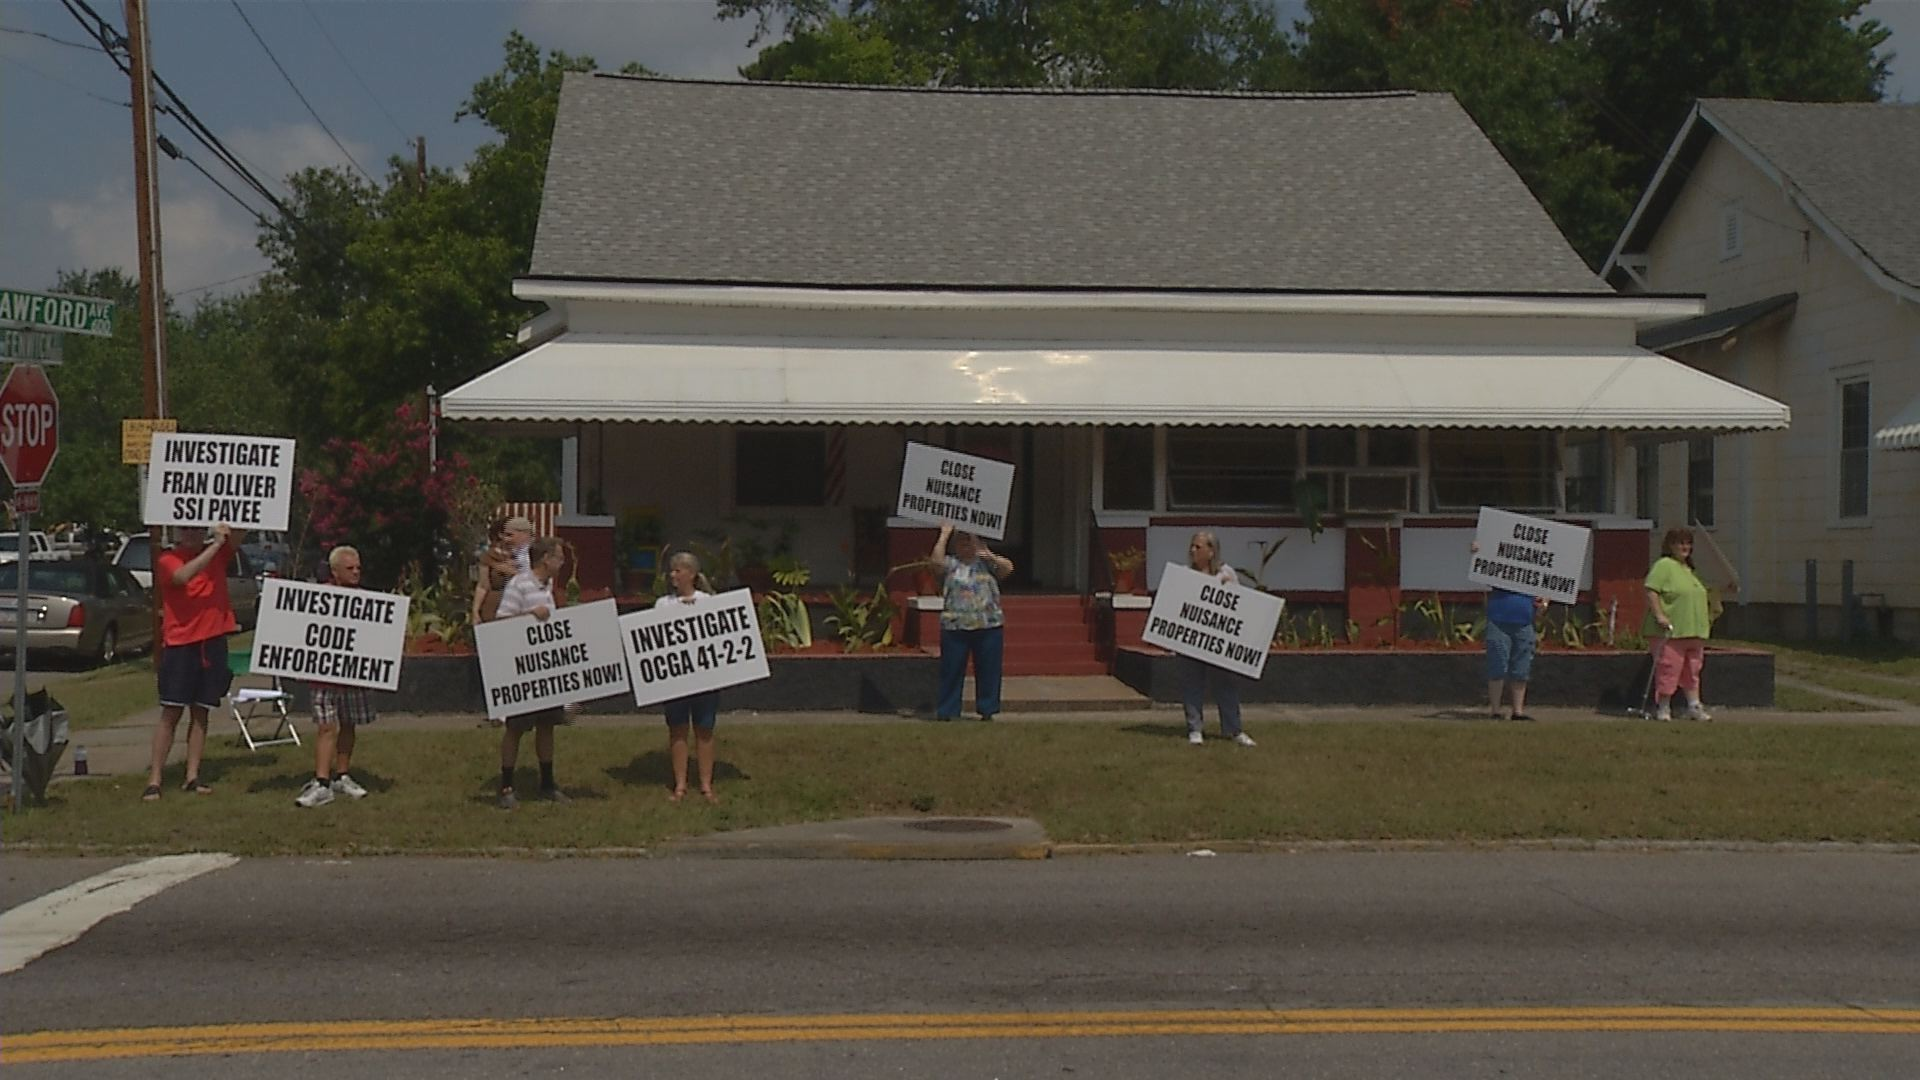 Protestors Want Mercy Ministries to be Condemned_158604